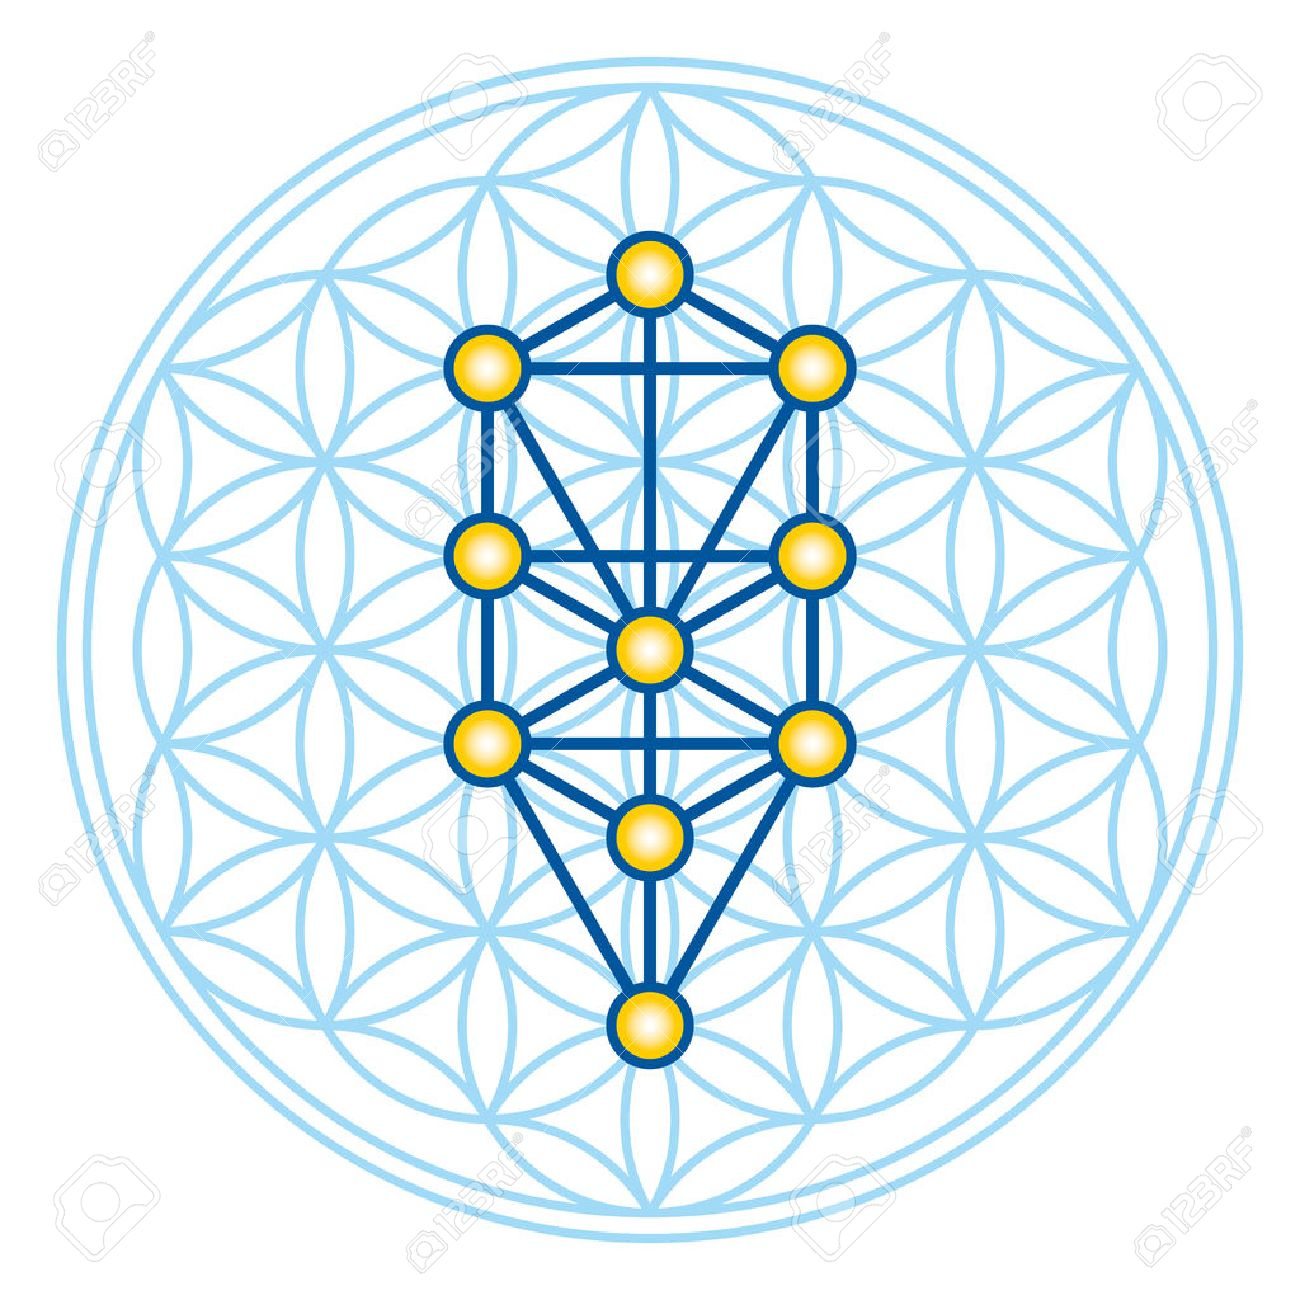 Flower of Life in Tree of Life. Sephirots of Kabbalah in ancient symmetrical symbol, composed of multiple overlapping circles, forming a flower like pattern. Sacred geometry. Illustration. Vector. Standard-Bild - 73766244